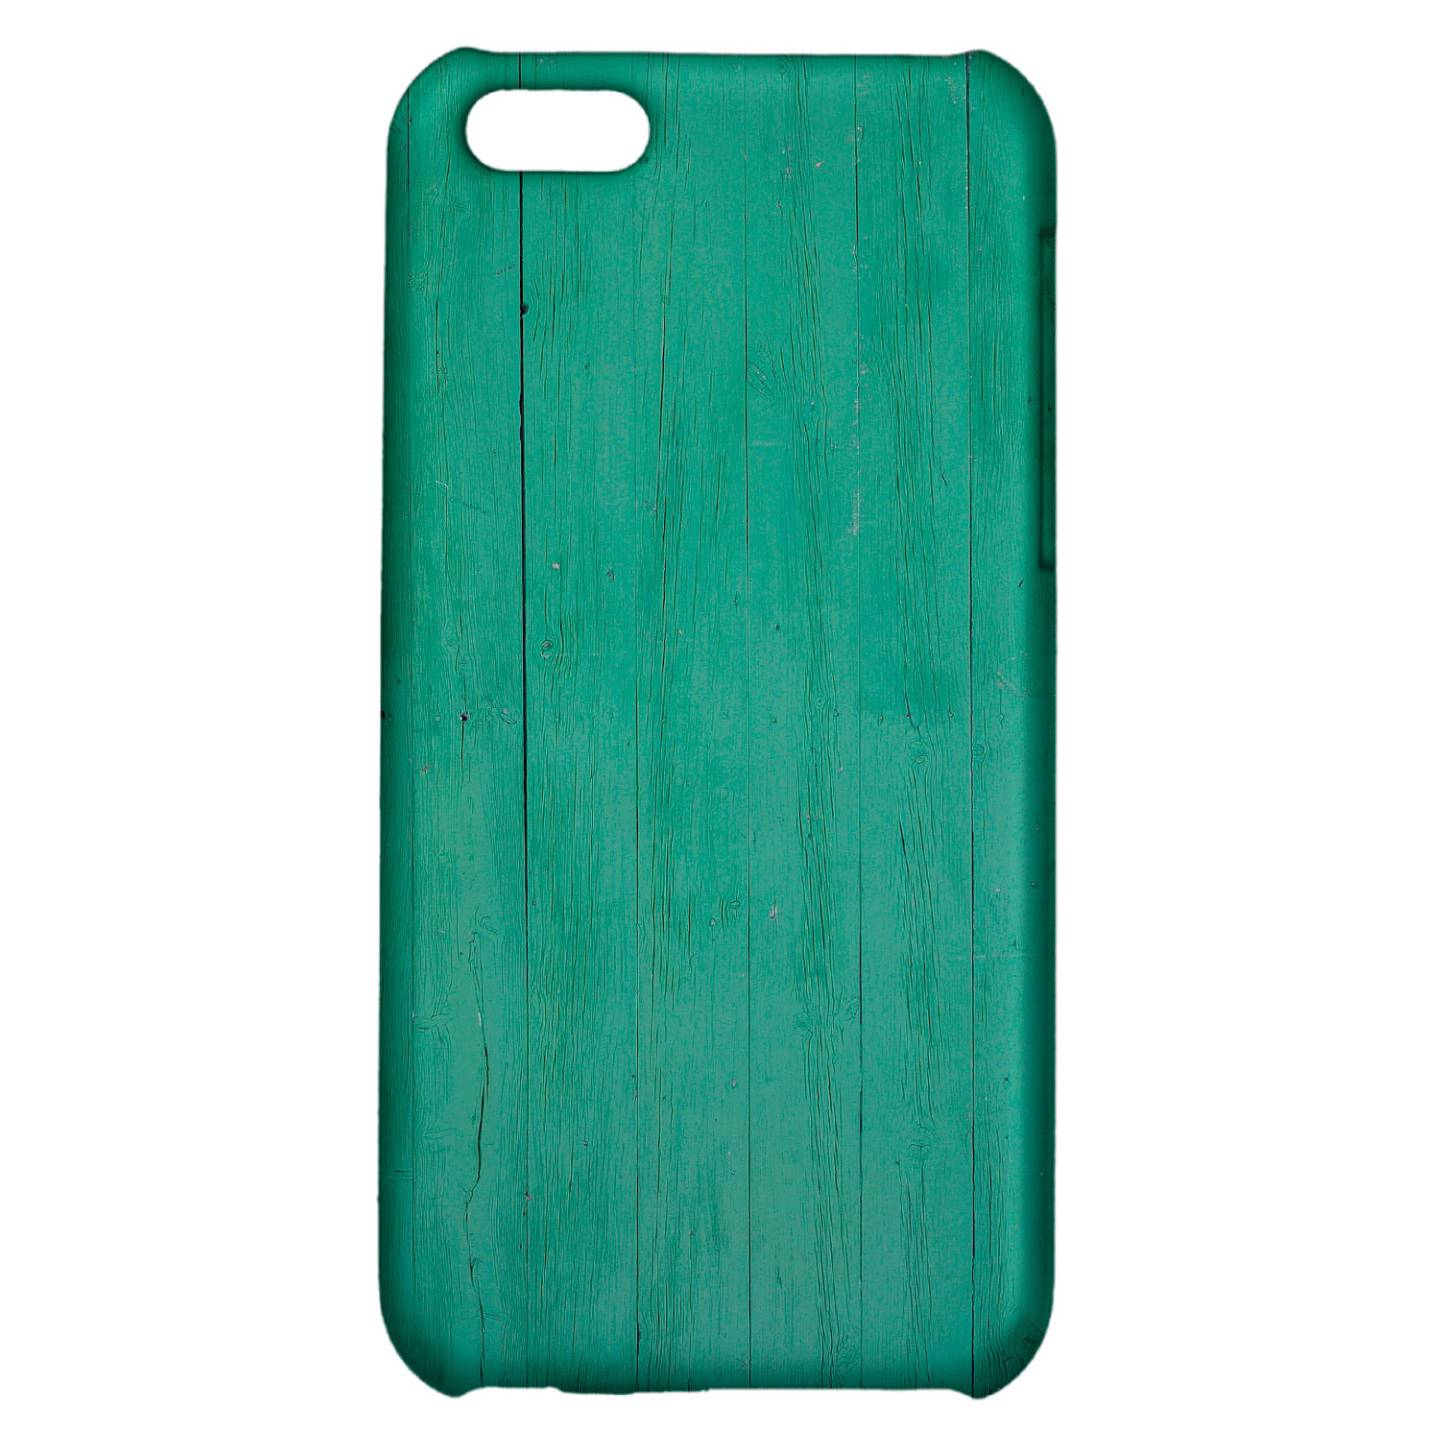 new green painted wood planks design custom cover skin iphone 5c new ebay